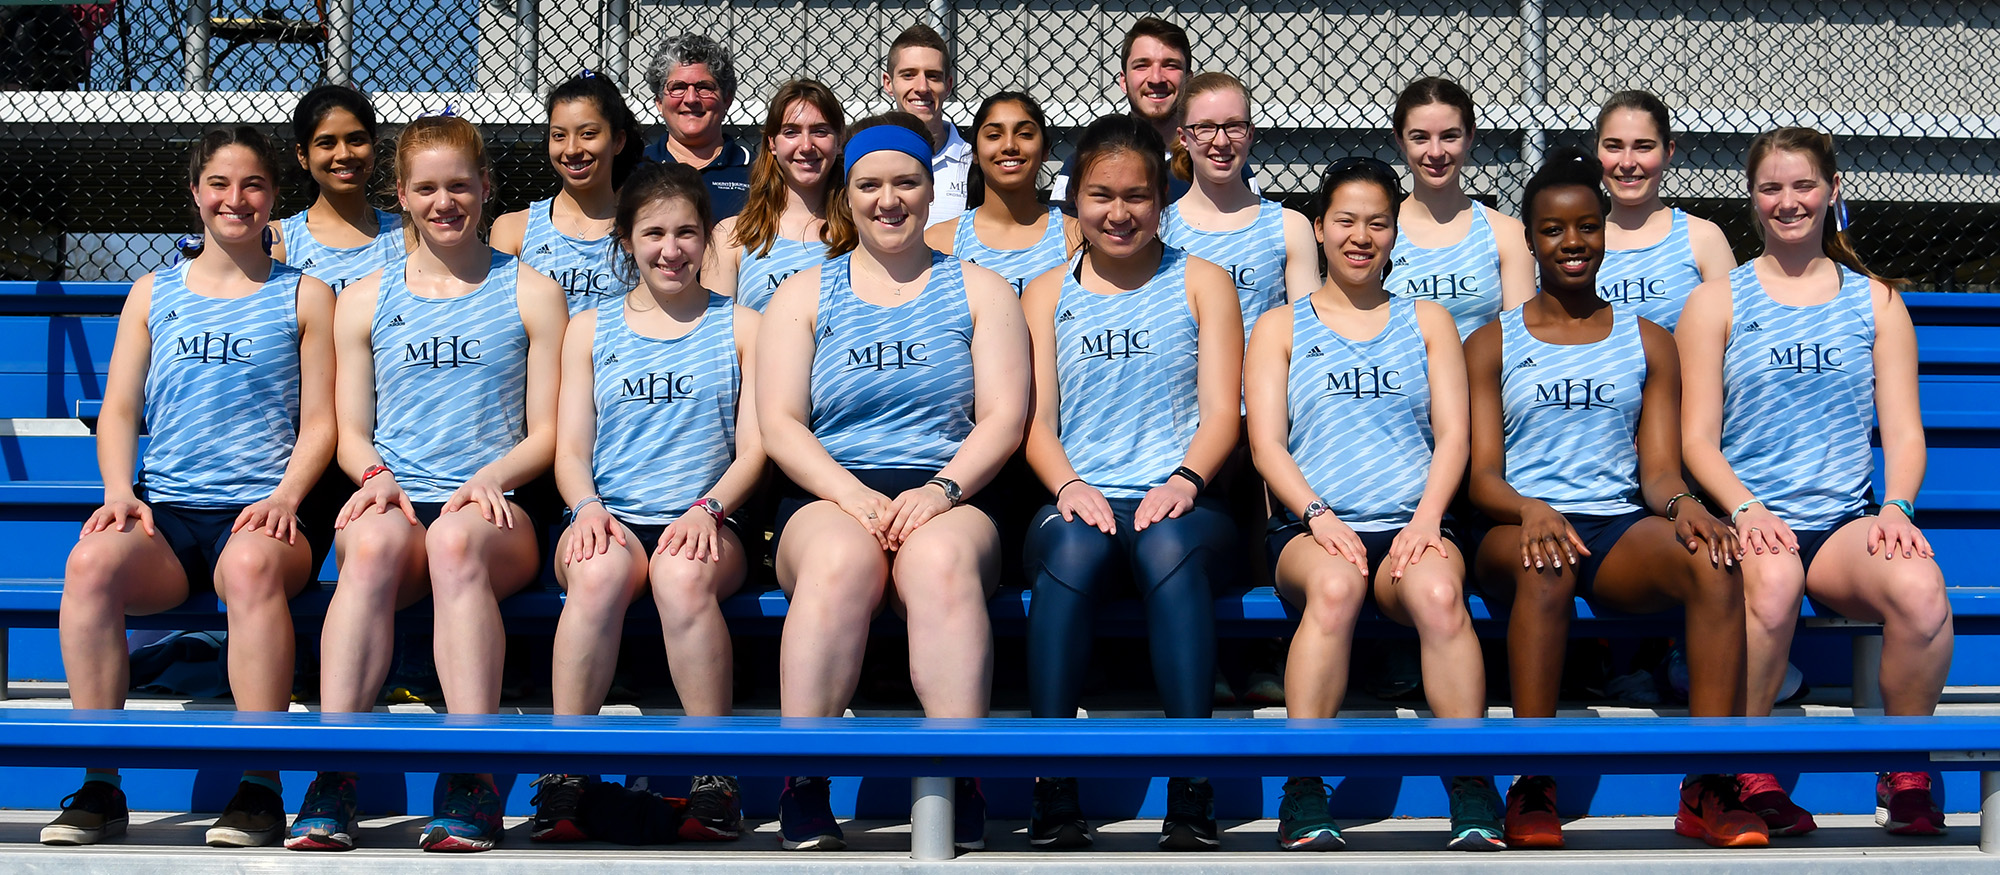 2017-18 Mount Holyoke Outdoor Track & Field Team photo